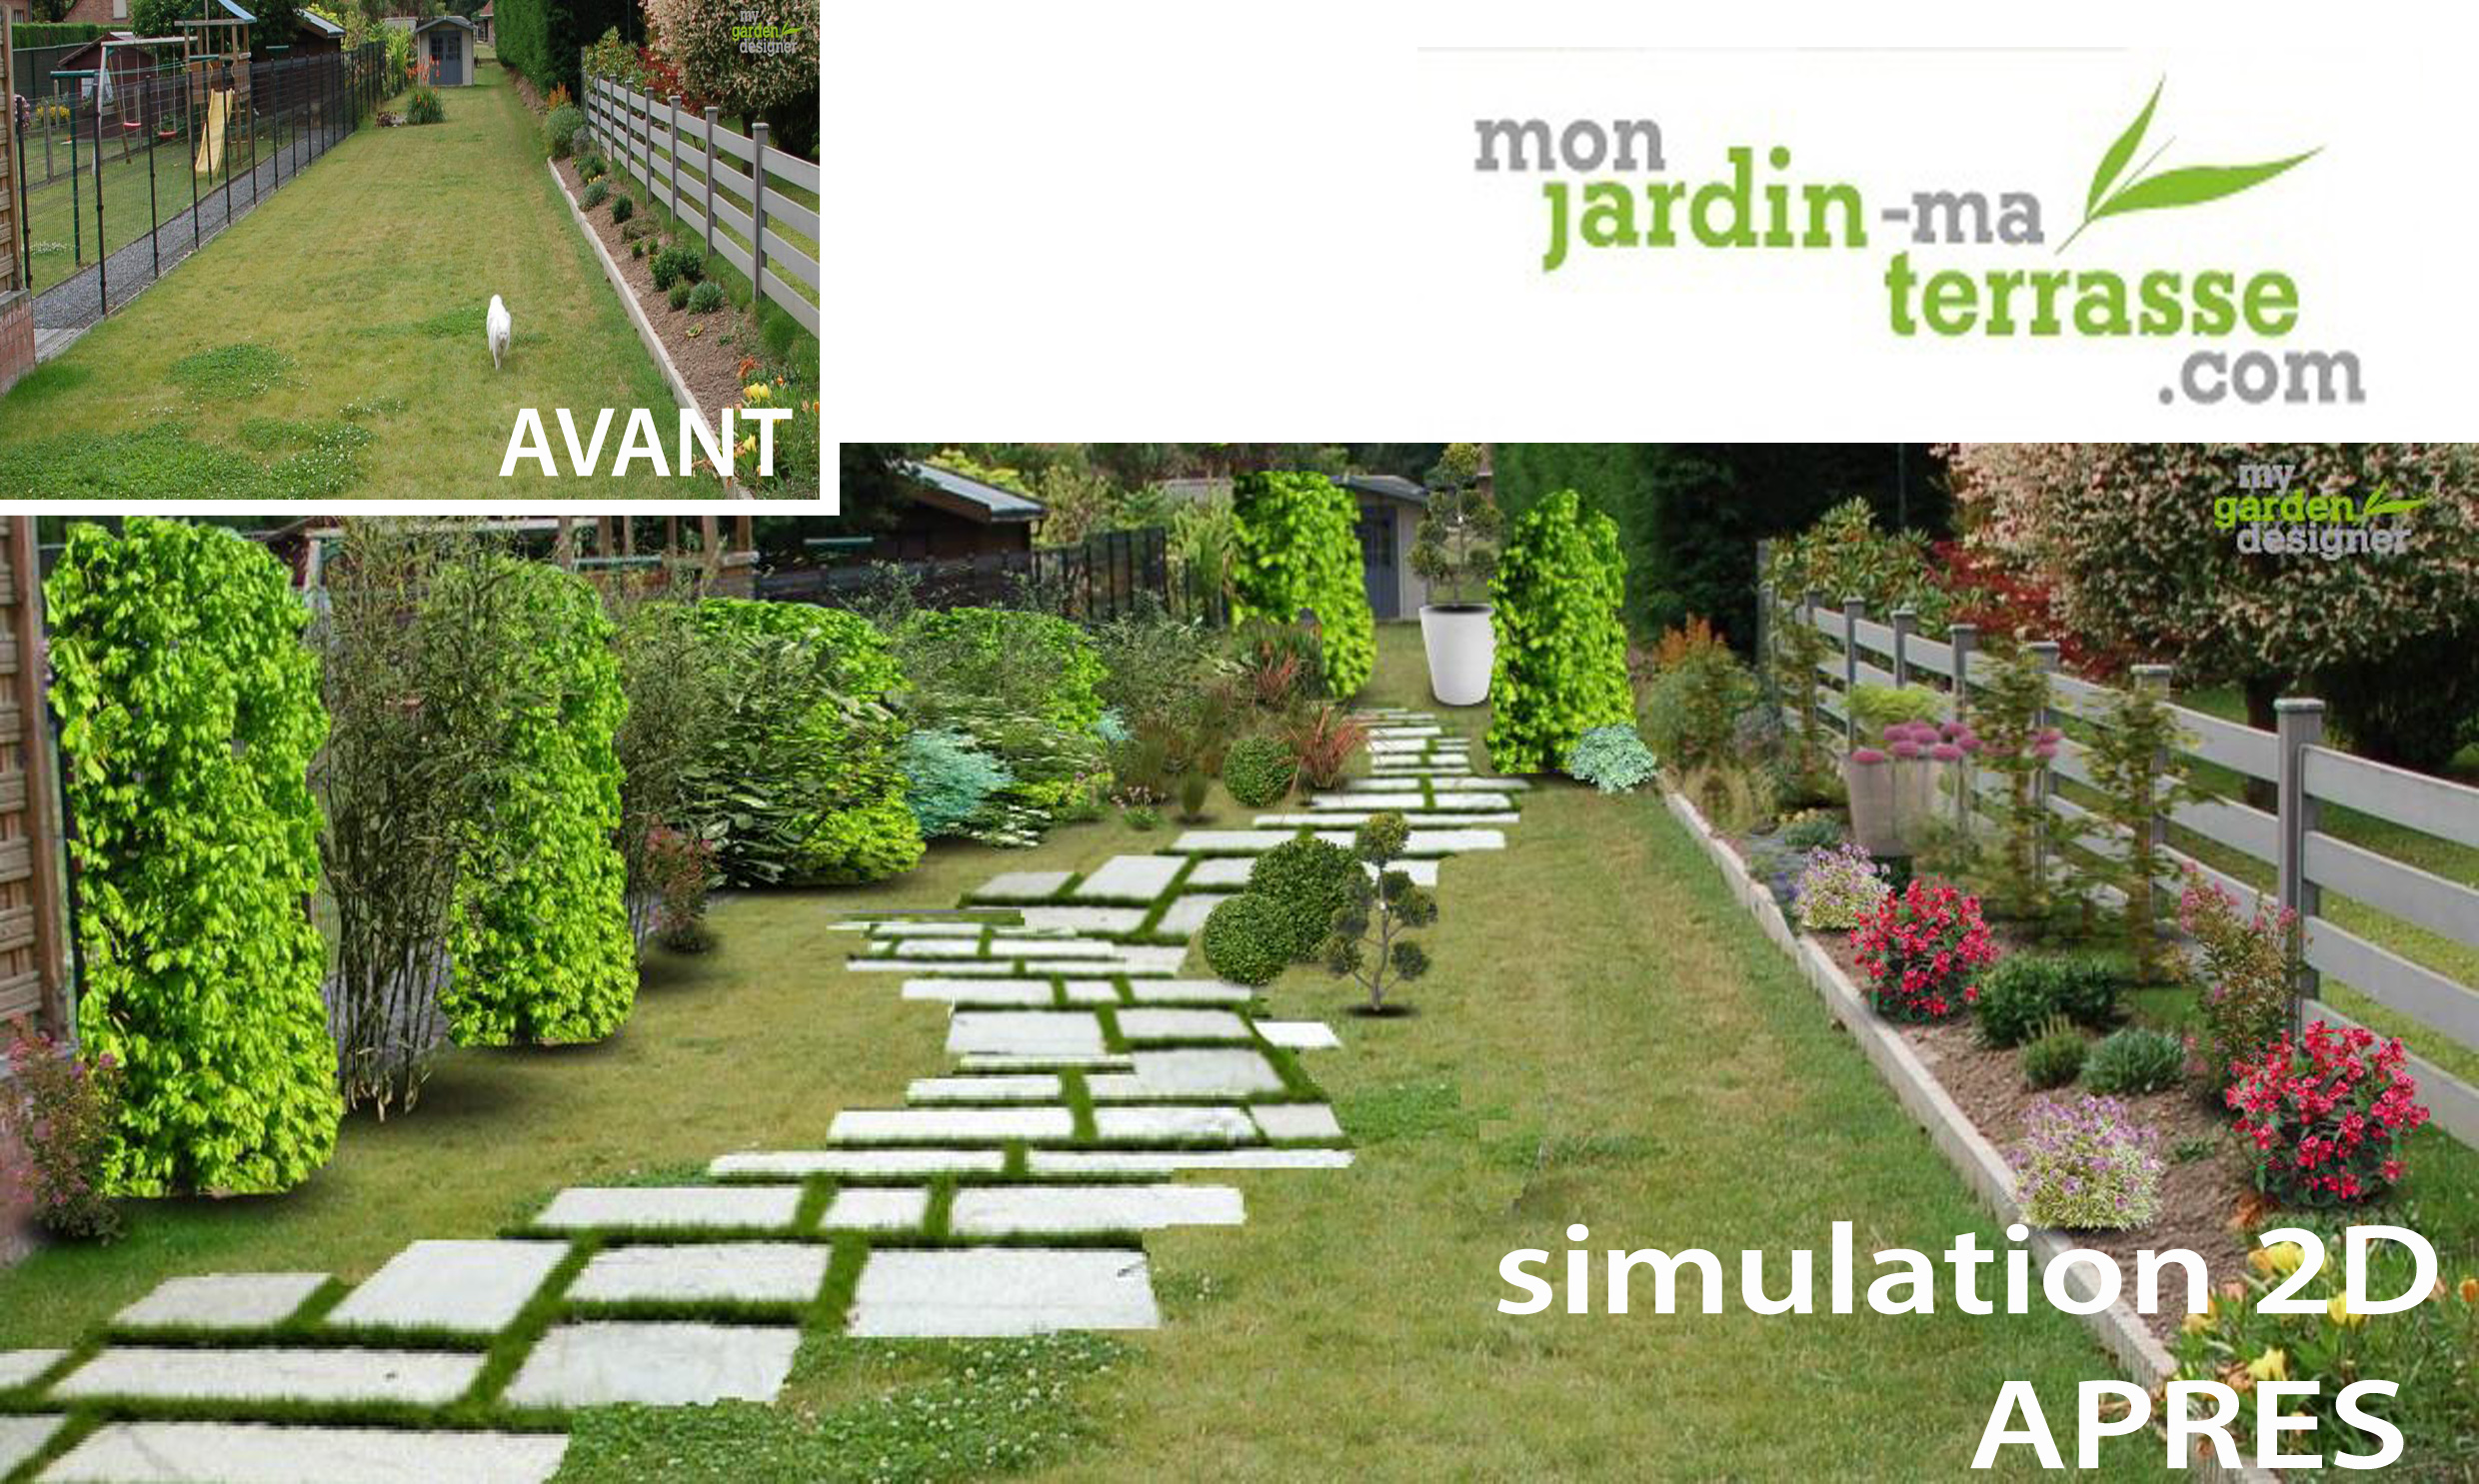 Comment am nager son jardin en longueur monjardin for Amenager son jardin rustica